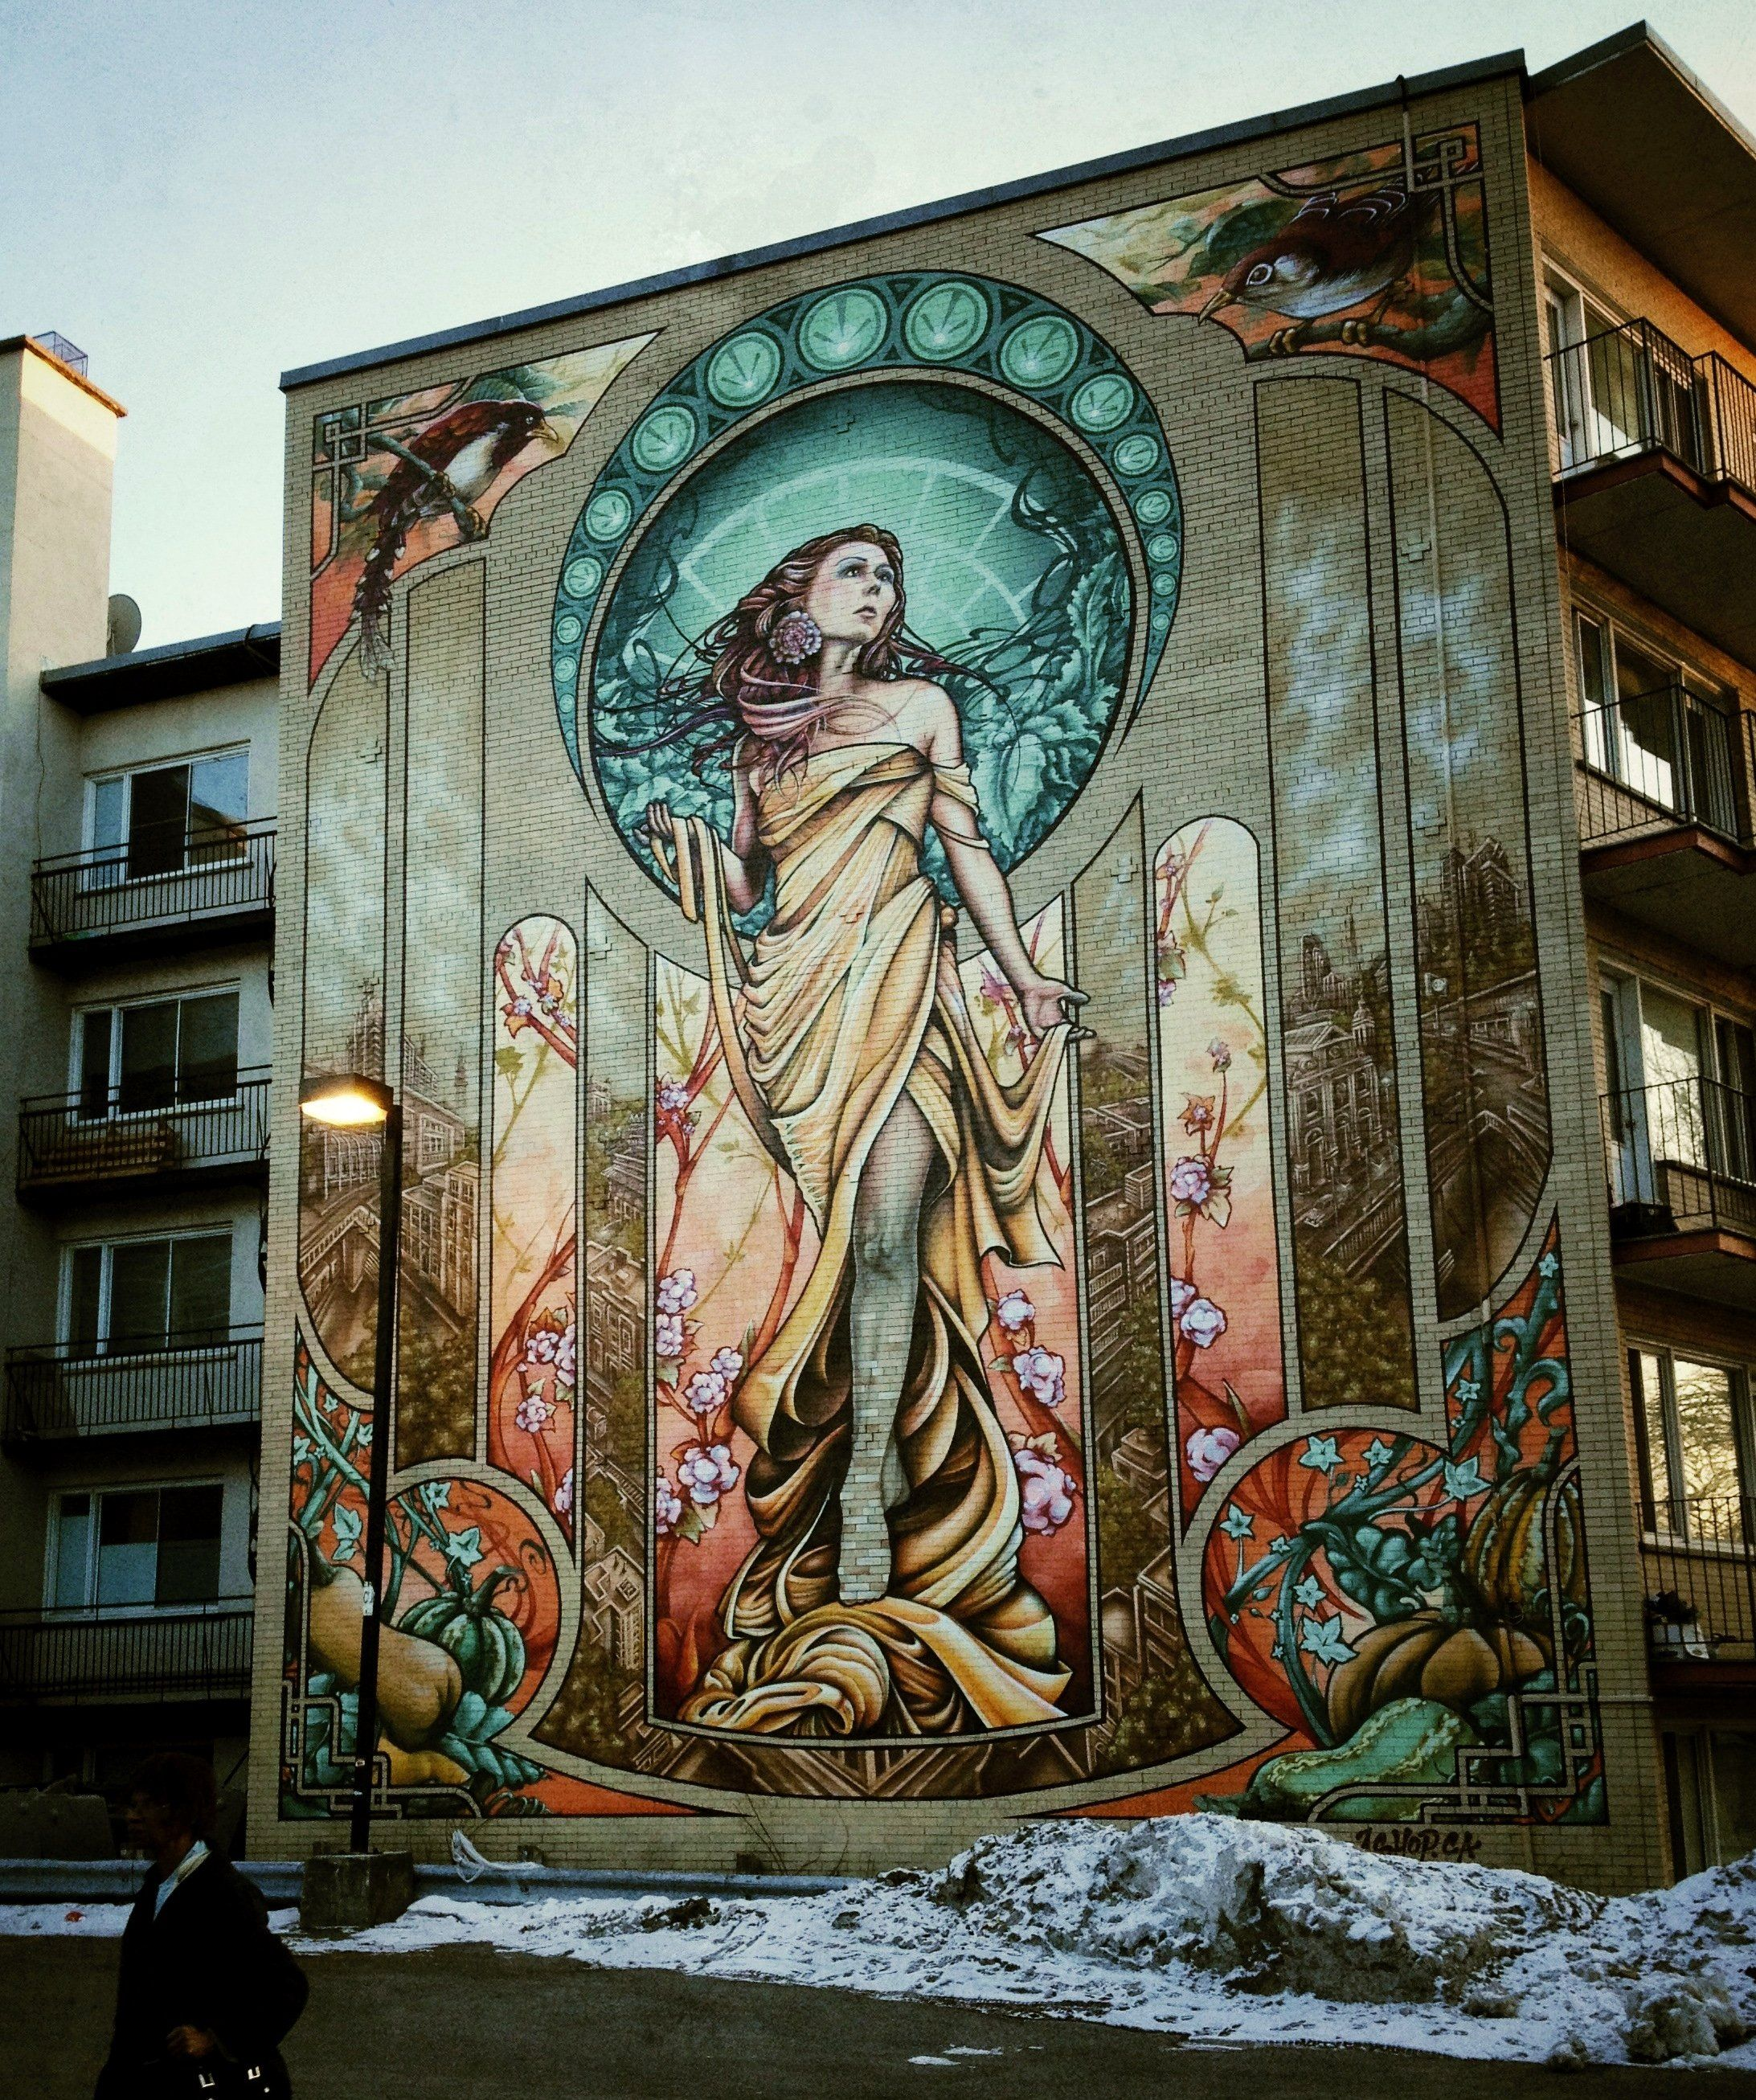 Cool Street Art Street Art Street And City - Amazing graffiti alters perspective space